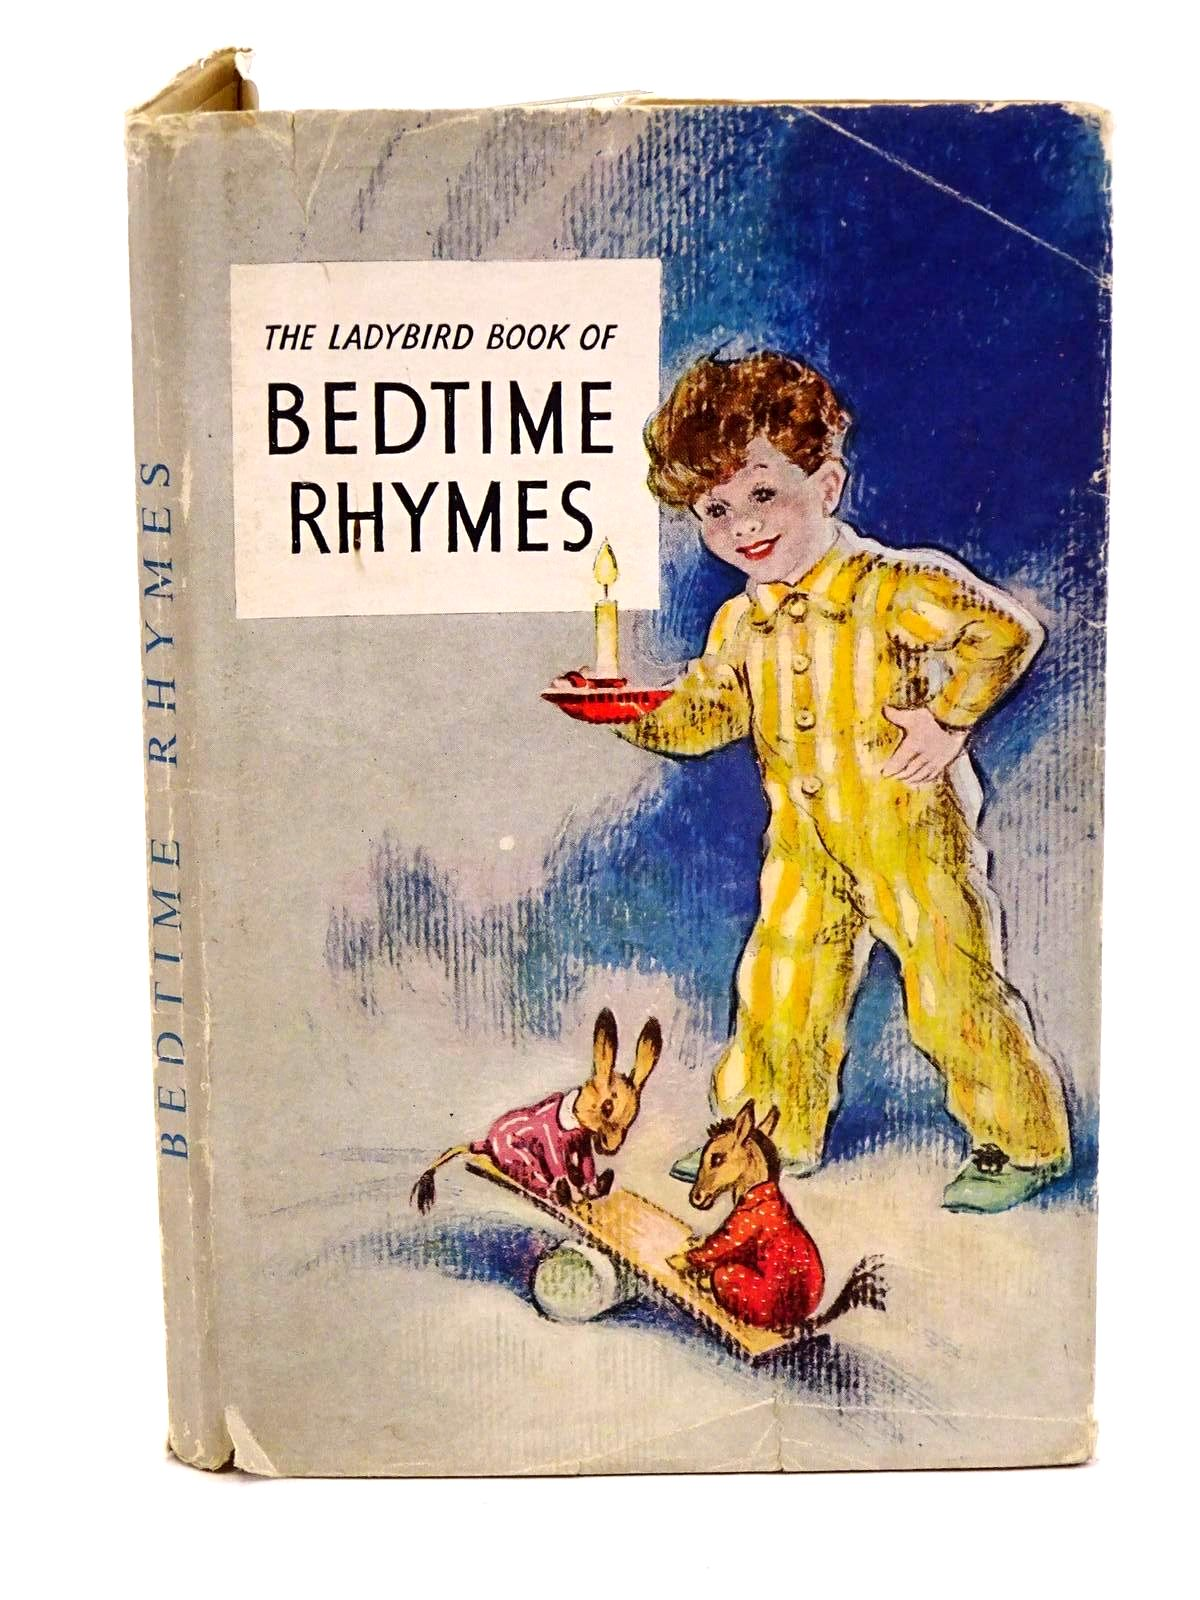 Photo of THE LADYBIRD BOOK OF BEDTIME RHYMES written by Lapage, Geoffrey illustrated by Brook, George published by Wills & Hepworth Ltd. (STOCK CODE: 1318230)  for sale by Stella & Rose's Books